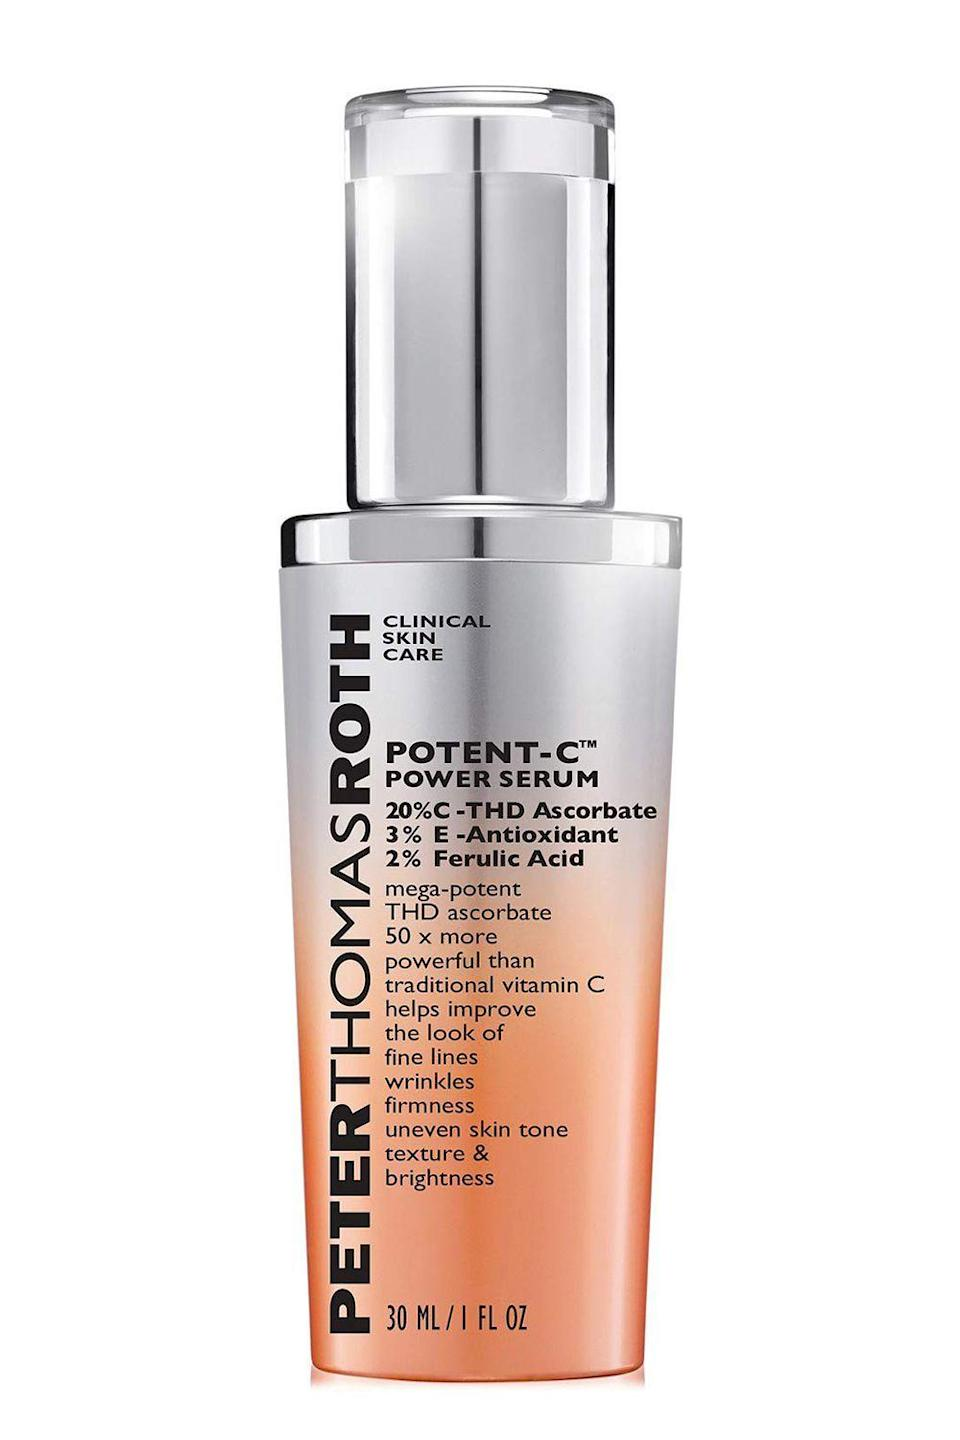 "<p><strong>Peter Thomas Roth</strong></p><p>ulta.com</p><p><strong>$95.00</strong></p><p><a href=""https://go.redirectingat.com?id=74968X1596630&url=https%3A%2F%2Fwww.ulta.com%2Fpotent-c-power-serum%3FproductId%3DxlsImpprod18531259&sref=https%3A%2F%2Fwww.cosmopolitan.com%2Fstyle-beauty%2Fbeauty%2Fg12091058%2Fbest-vitamin-c-serum-face-skin%2F"" rel=""nofollow noopener"" target=""_blank"" data-ylk=""slk:Shop Now"" class=""link rapid-noclick-resp"">Shop Now</a></p><p>This vitamin C serum is packed with 30 percent THD ascorbate (a slightly more stable form of vitamin C), 3 percent vitamin E (anti-inflammatory), 2 percent ferulic acid (boosts the efficacy of vitamin C), and <a href=""https://www.cosmopolitan.com/style-beauty/beauty/g28948492/best-hyaluronic-acid-serum/"" rel=""nofollow noopener"" target=""_blank"" data-ylk=""slk:hyaluronic acid"" class=""link rapid-noclick-resp"">hyaluronic acid</a> (plumping and hydrating). Basically, your <strong>face will stay hydrated and dewy all day long<em>, </em></strong>while also fighting dark spots. Magical, right?</p>"